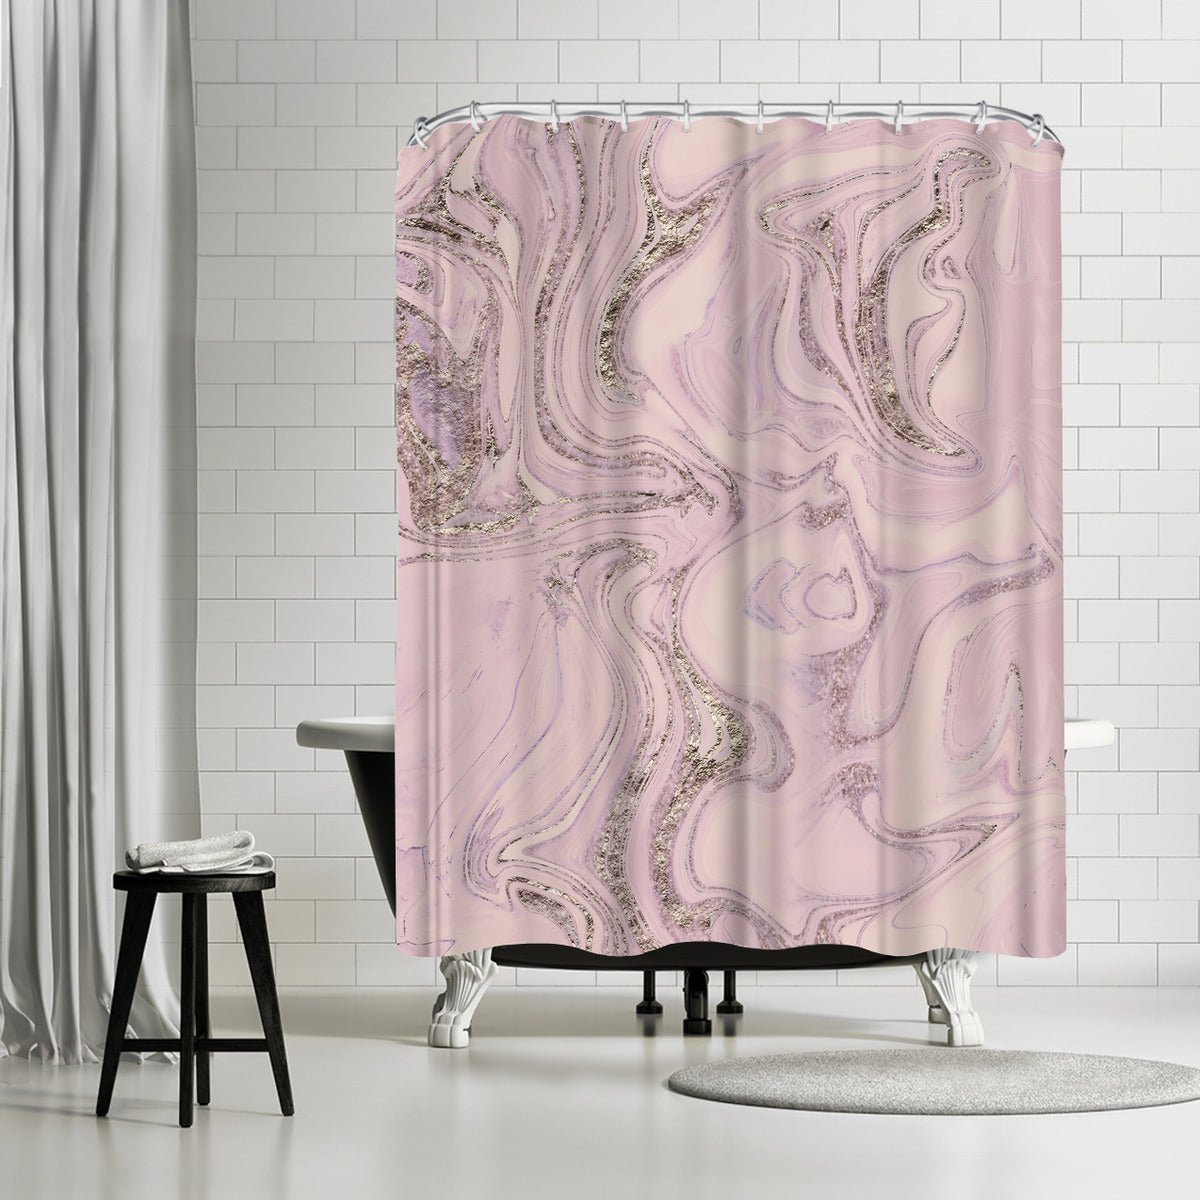 Glamorous Pink Marble by Lebens Art Shower Curtain - Shower Curtain - Americanflat